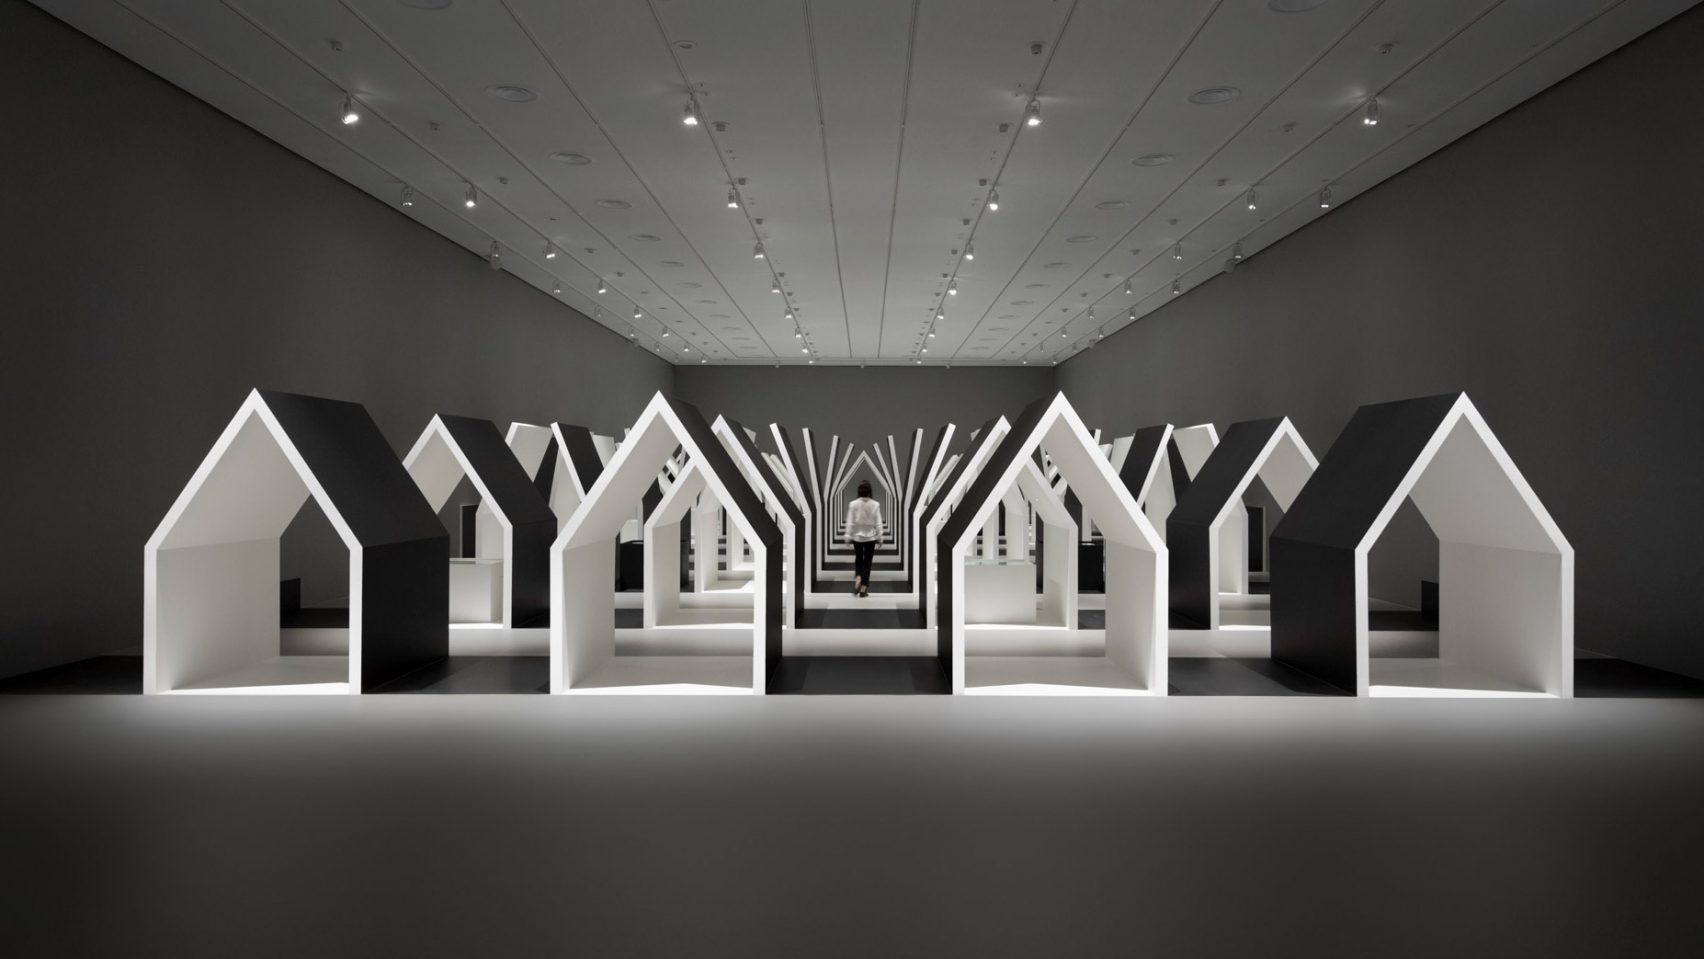 A mind-bending M.C. Escher exhibition designed by Nendo